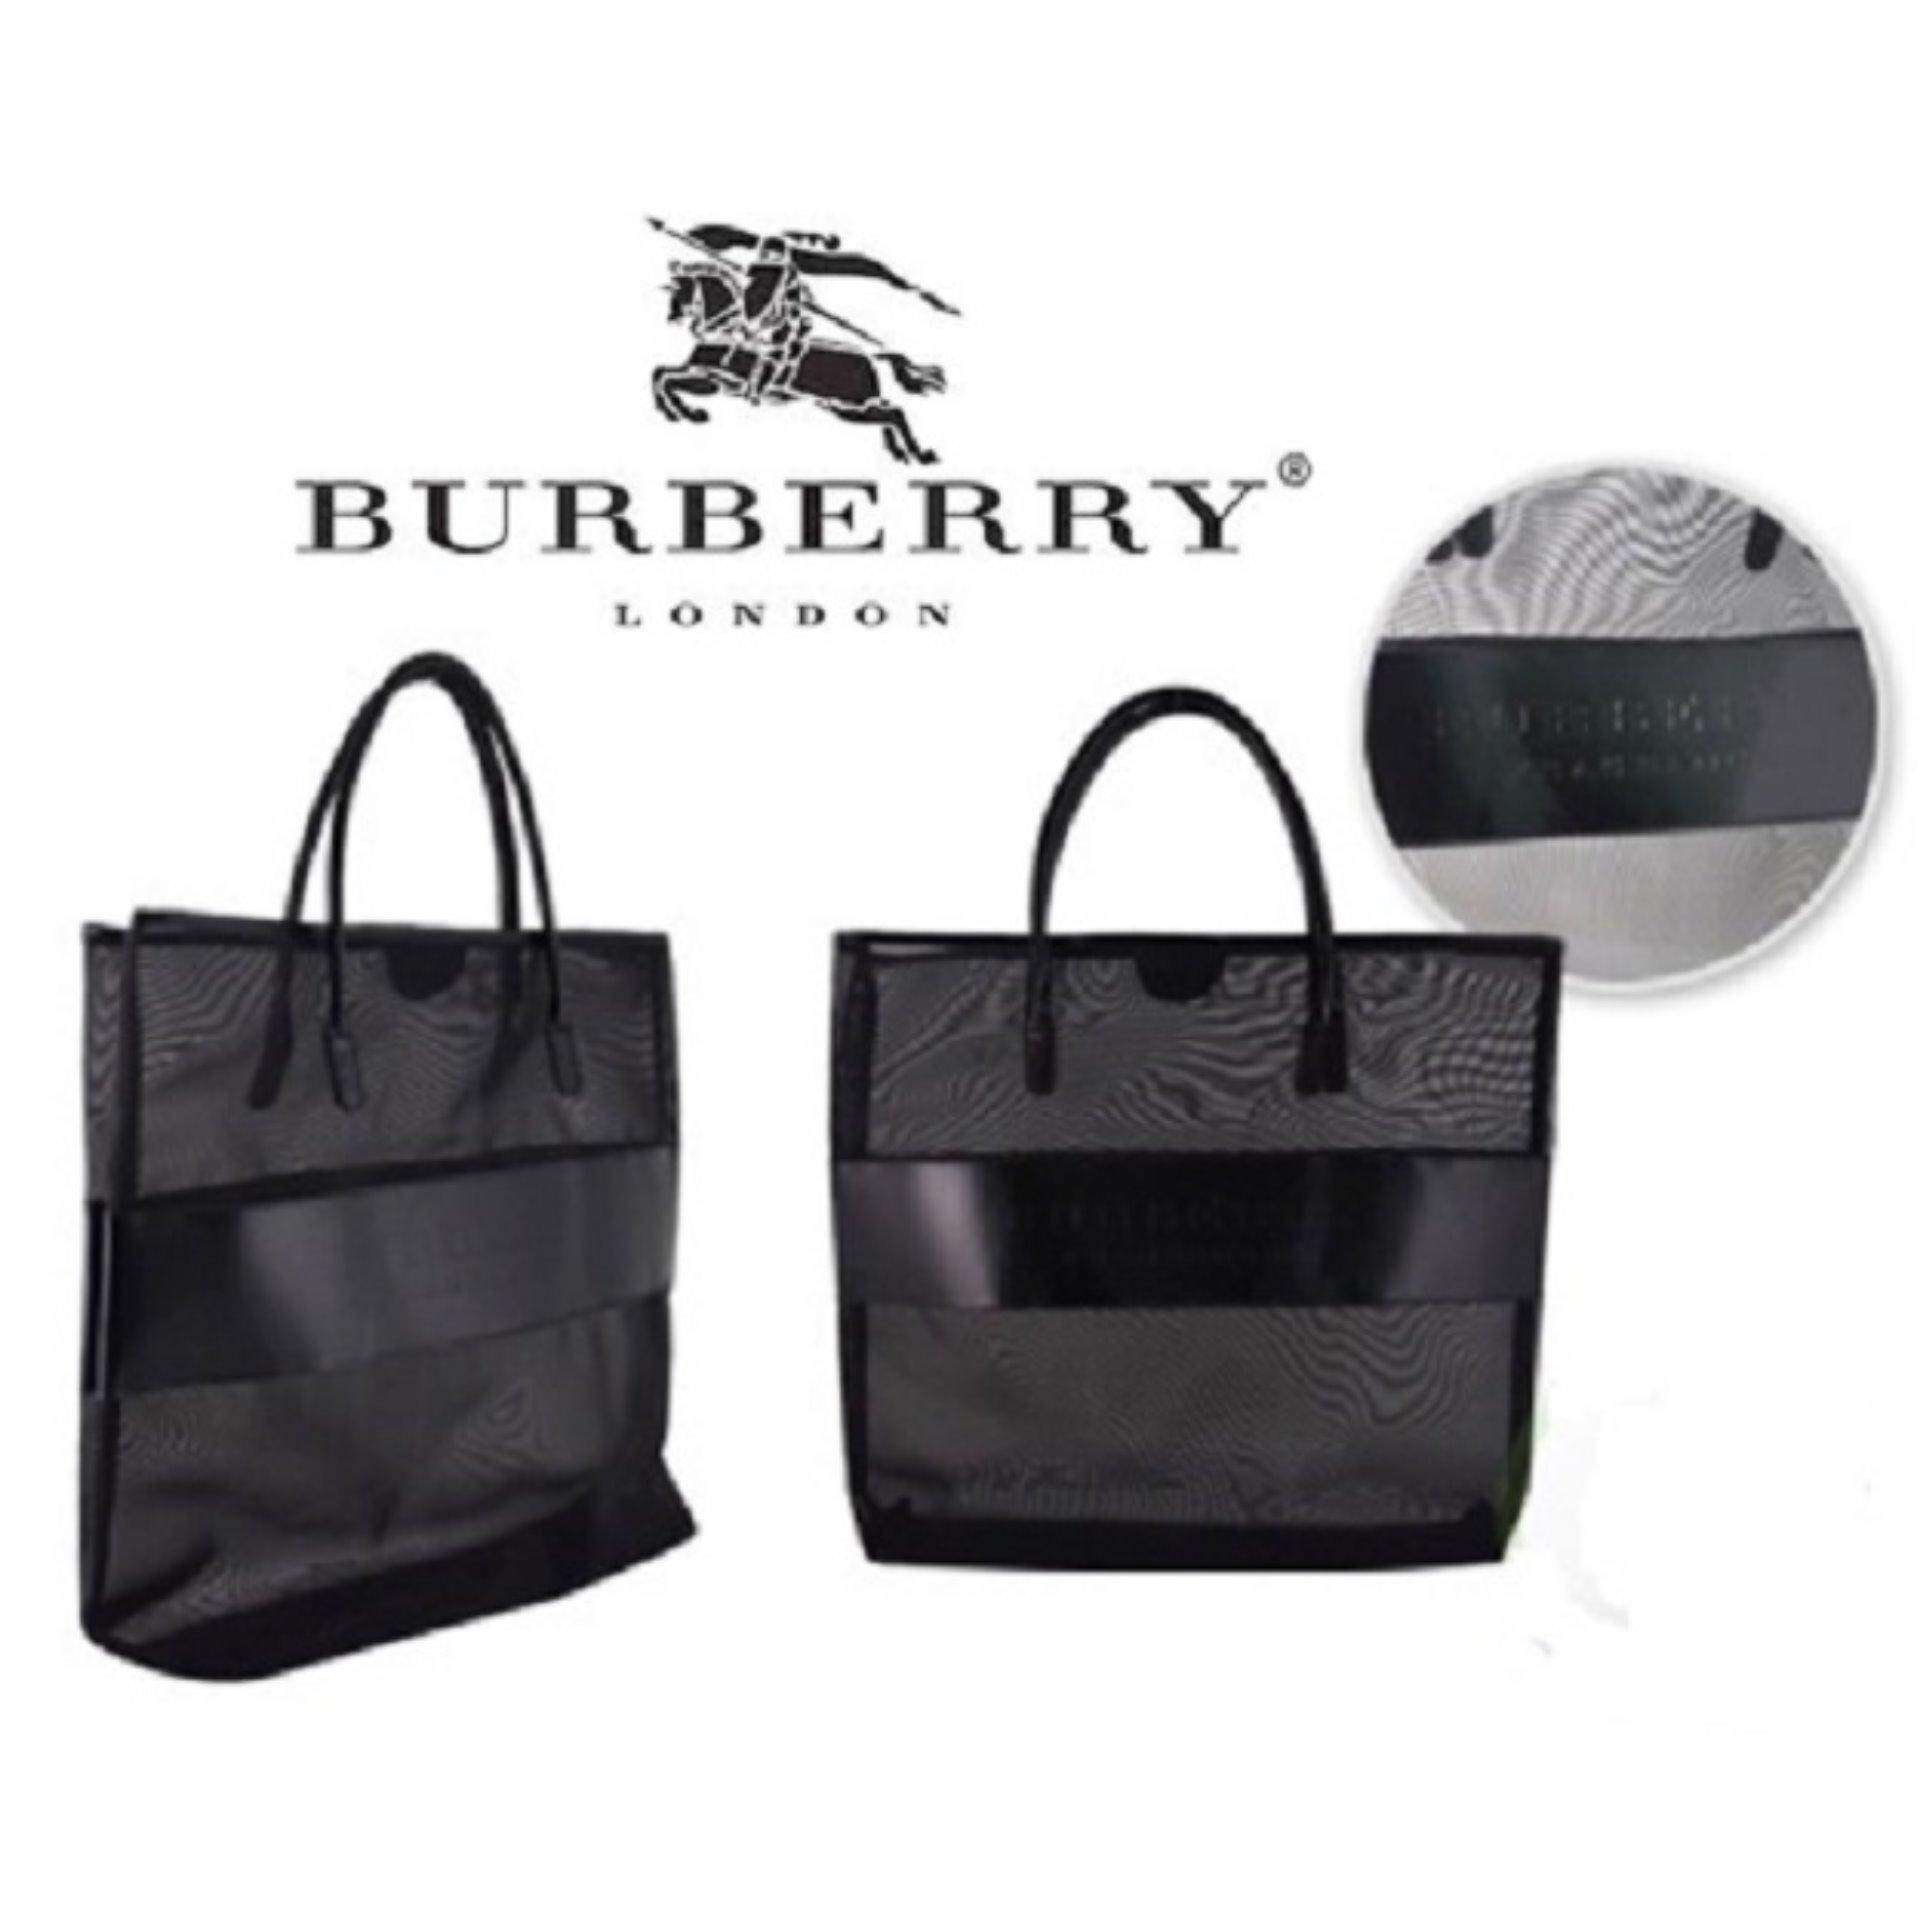 0c3d3d9e0766 Burberry Mesh Tote Bag- Clearance Sale Below Cost